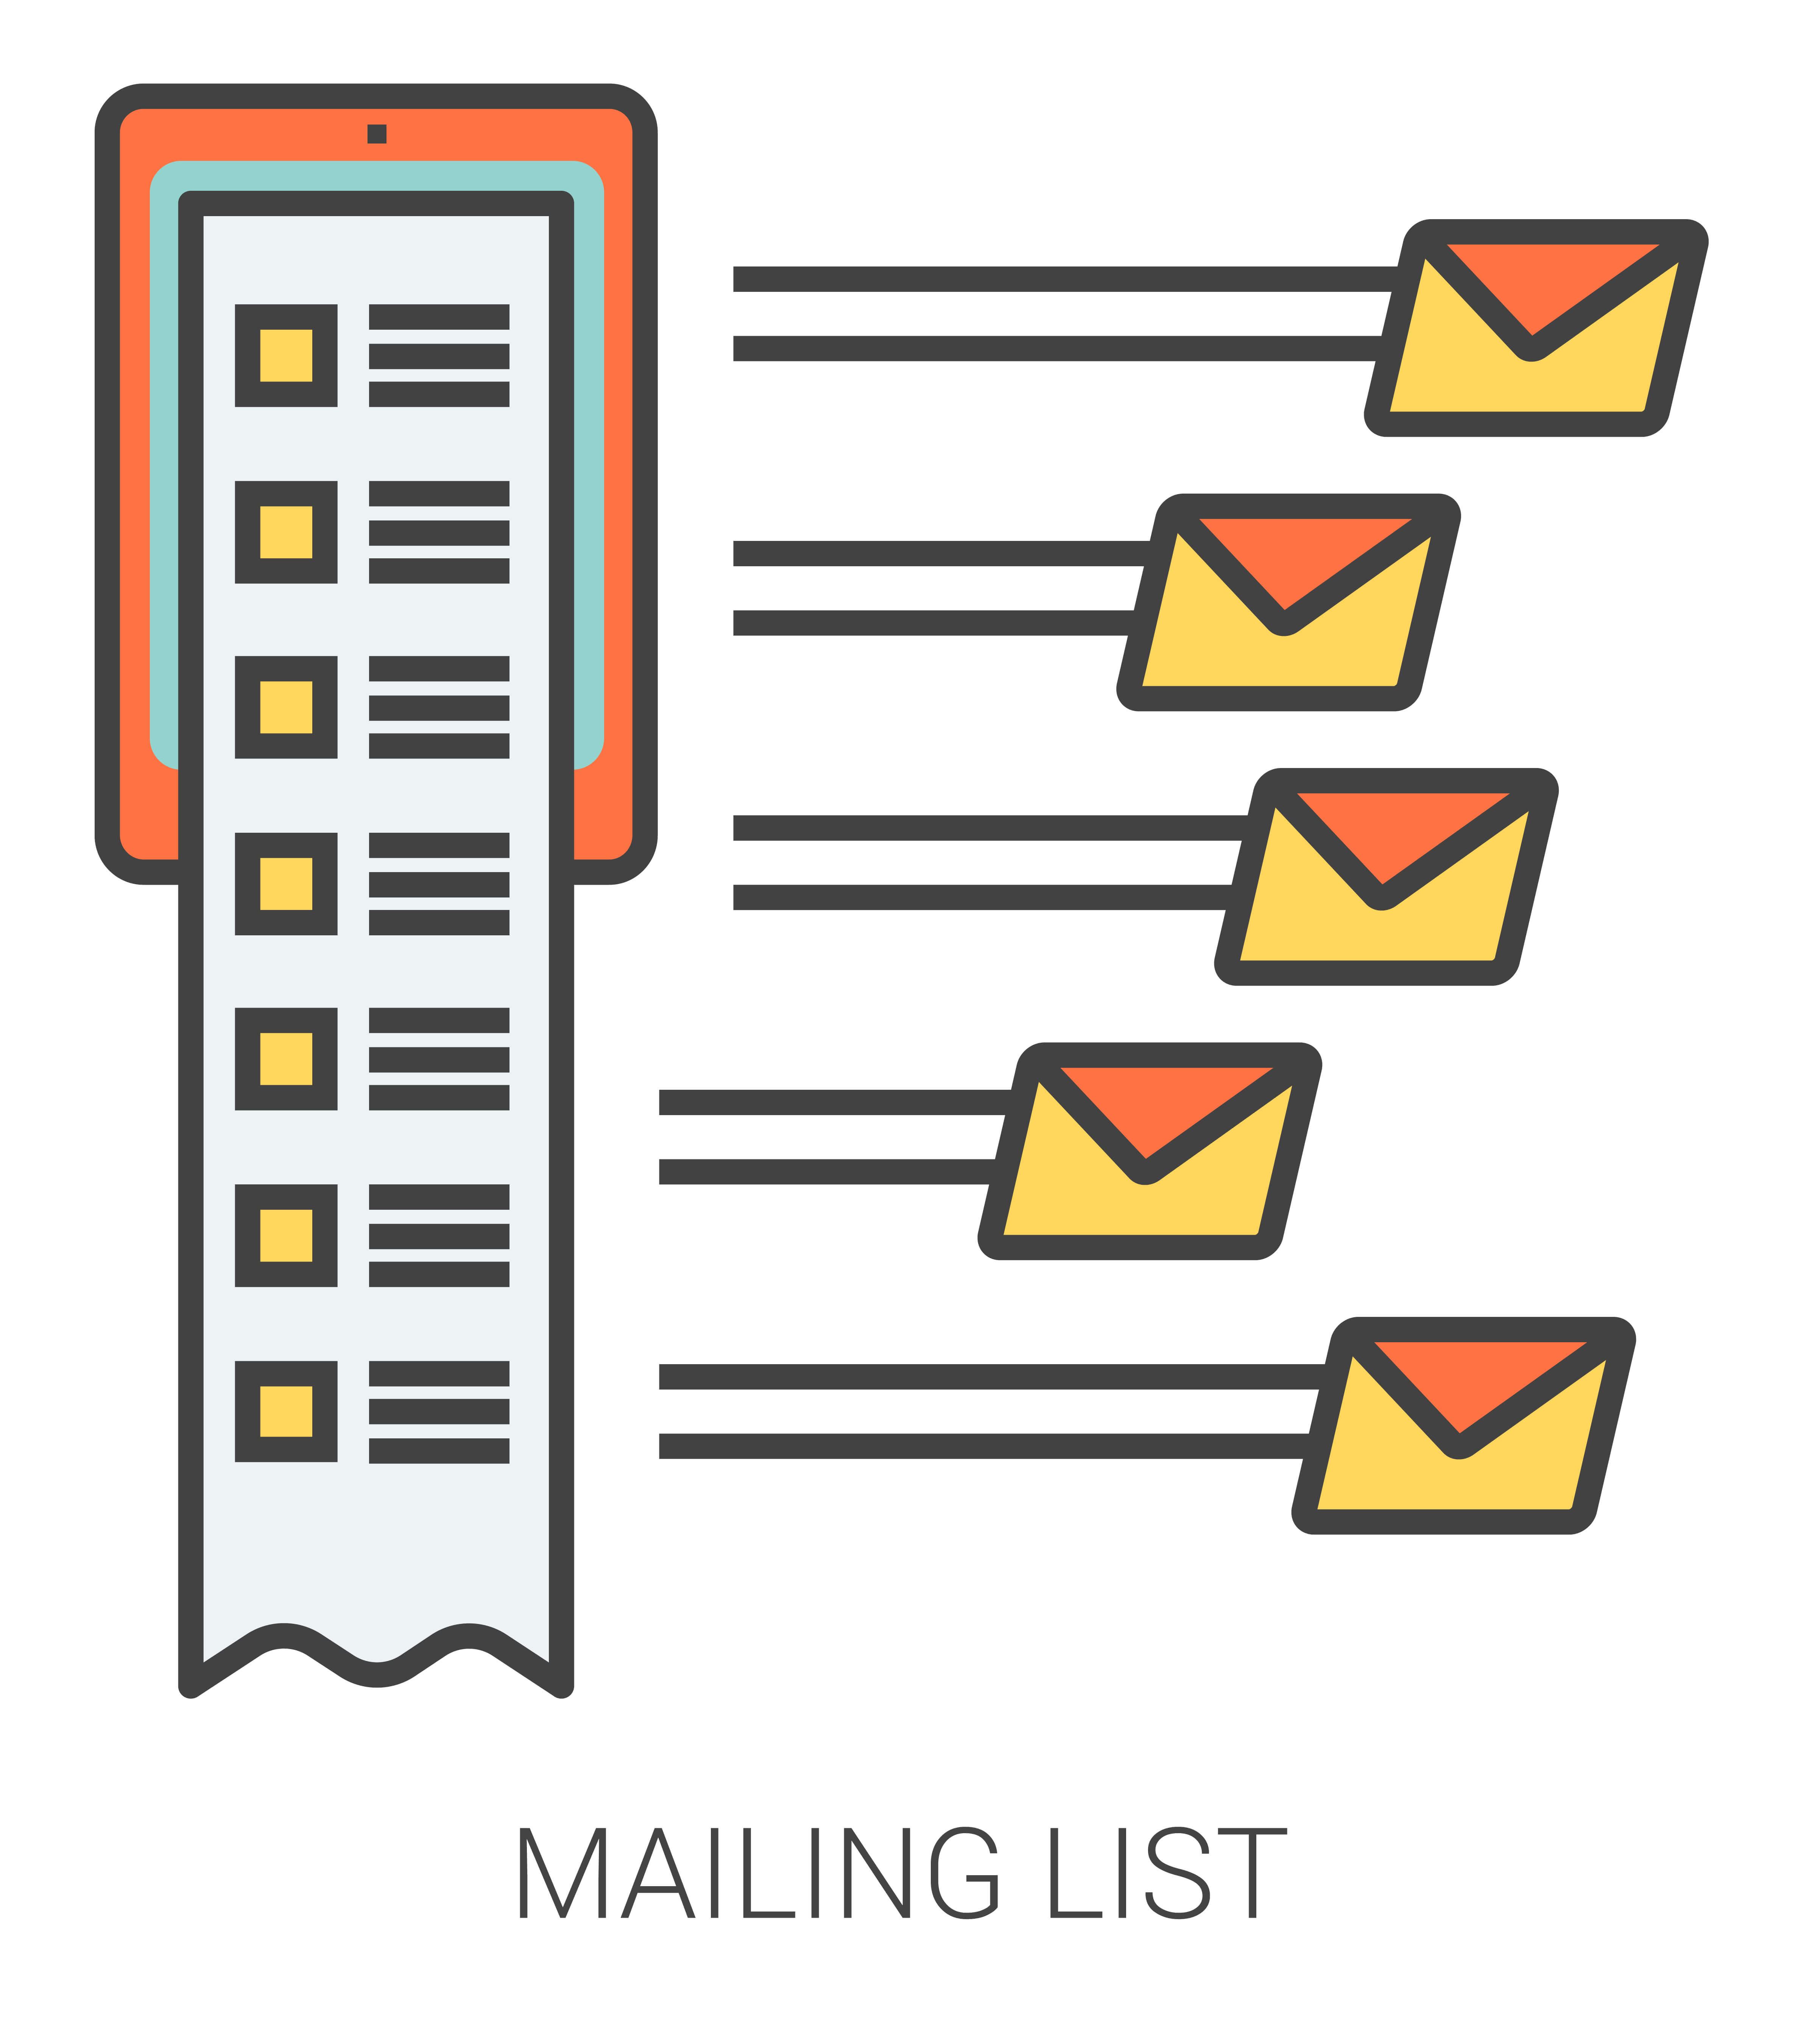 Mailing lists are the lifeblood of your direct mail